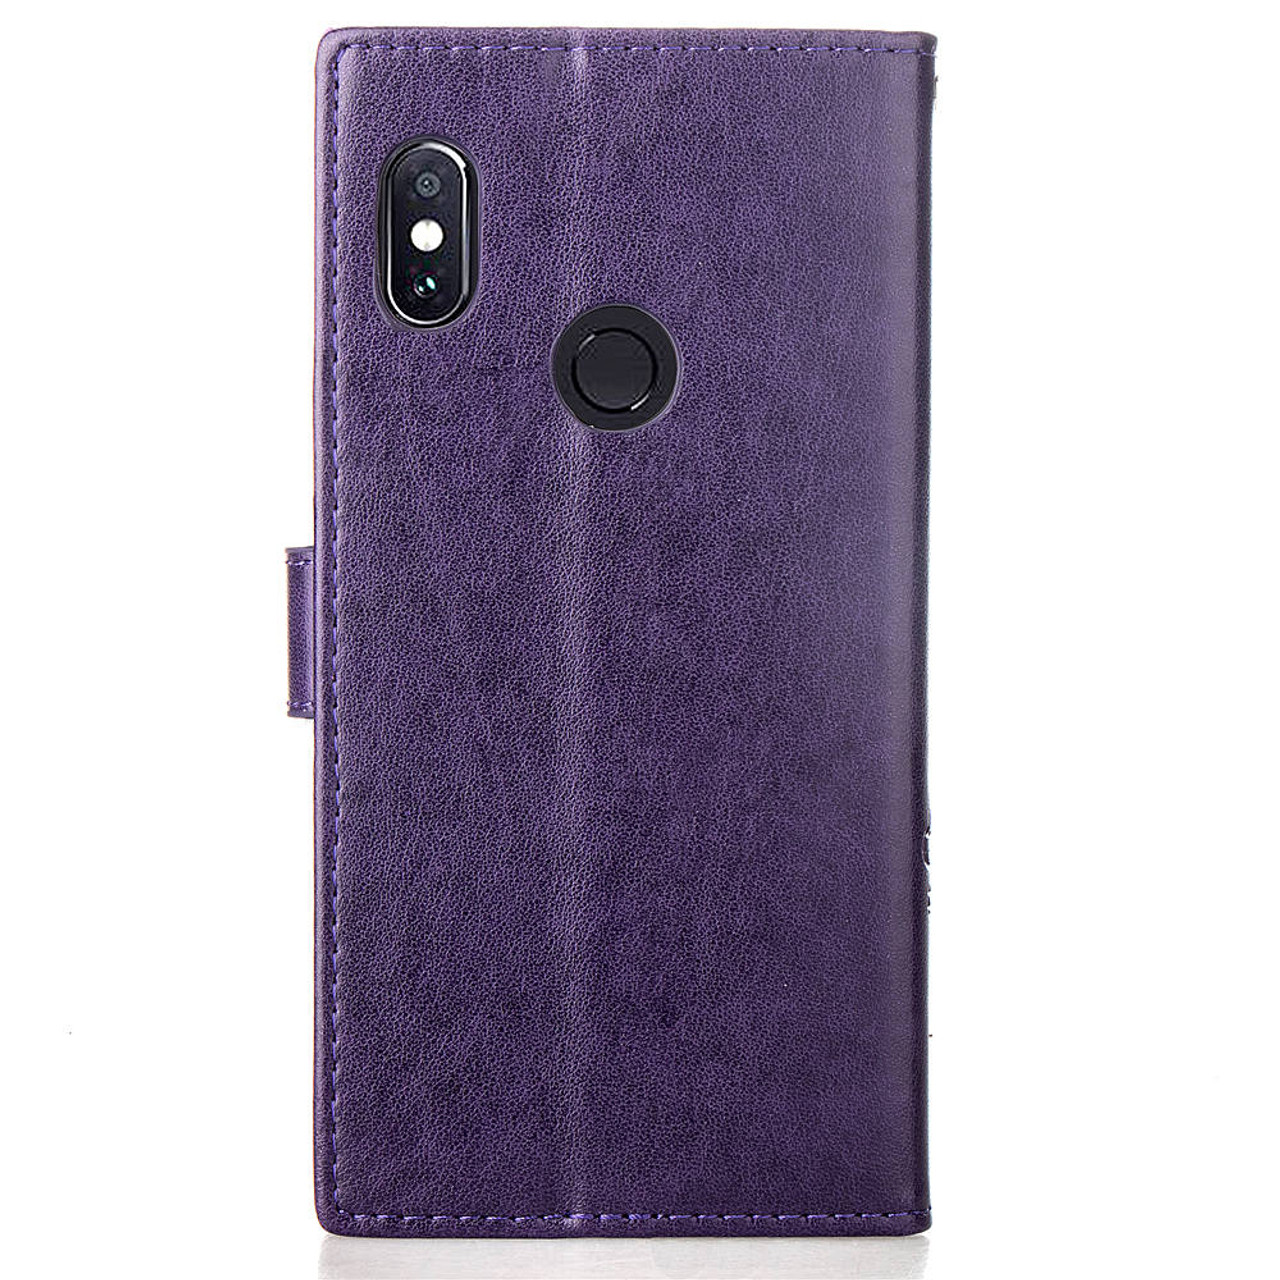 Clothing, Shoes & Accessories New Fashion 3d Leather Flip Case For Xiaomi Mi 8 Se 6x 5x A1 A2 Max 2 Wallet Stand Phone Cases For Redmi S2 Y2 5 Plus Note 7 5a Prime Pro